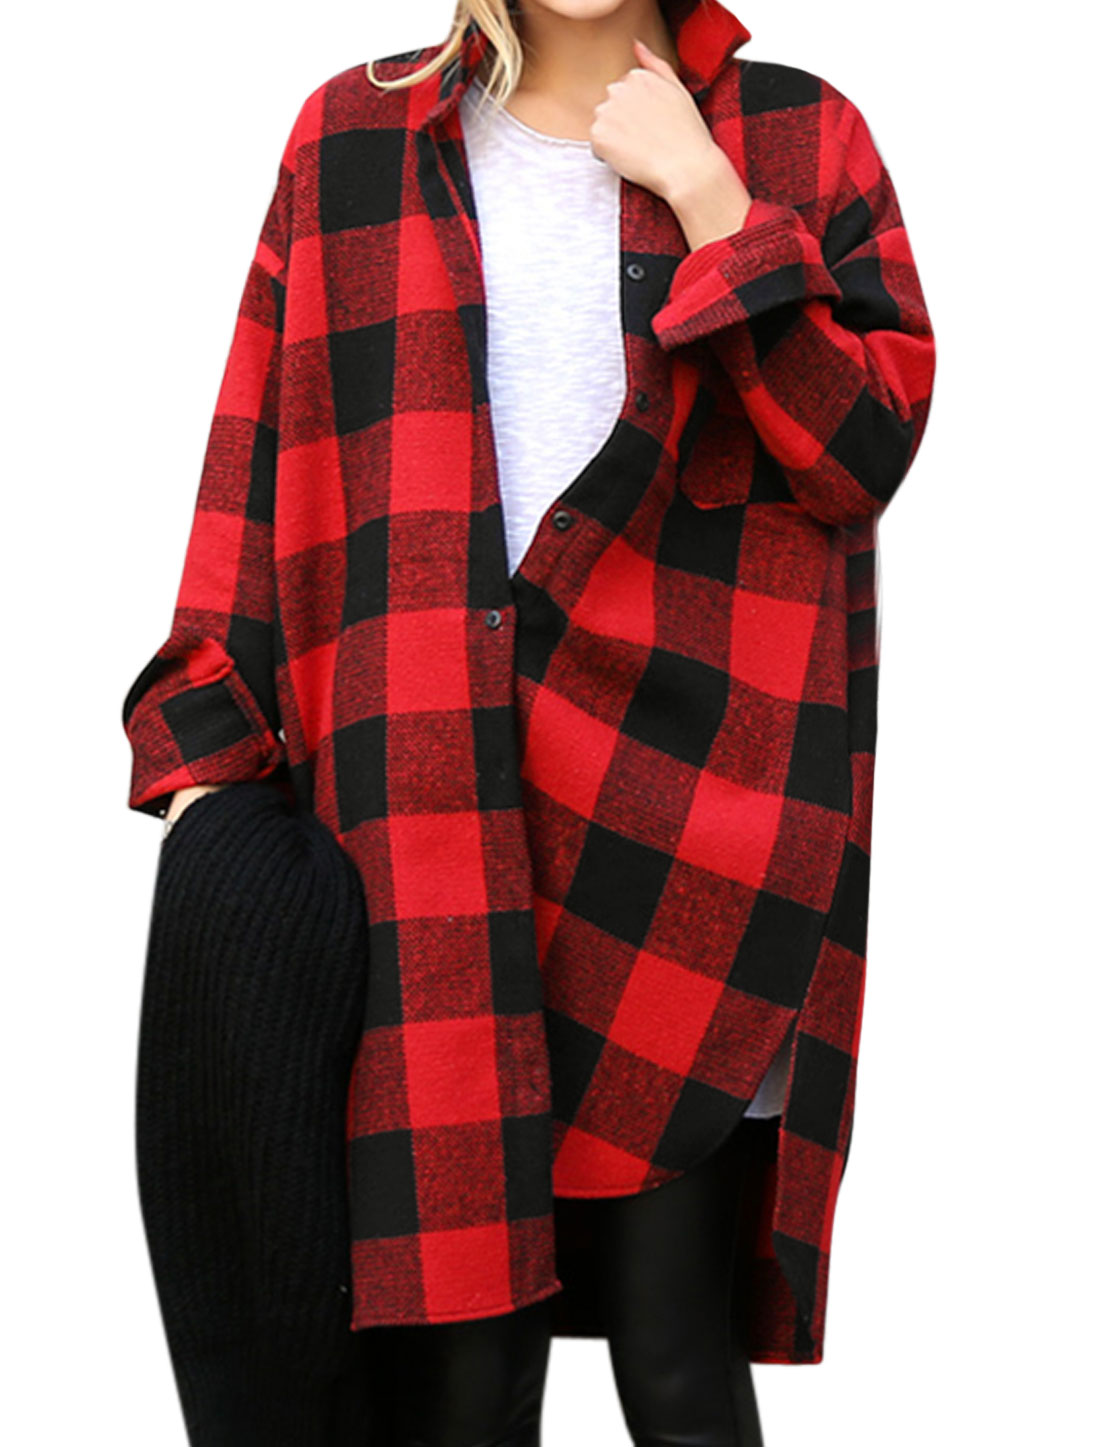 Women Batwing Sleeves Oversized Tunic Plaids Shirt Red Black S